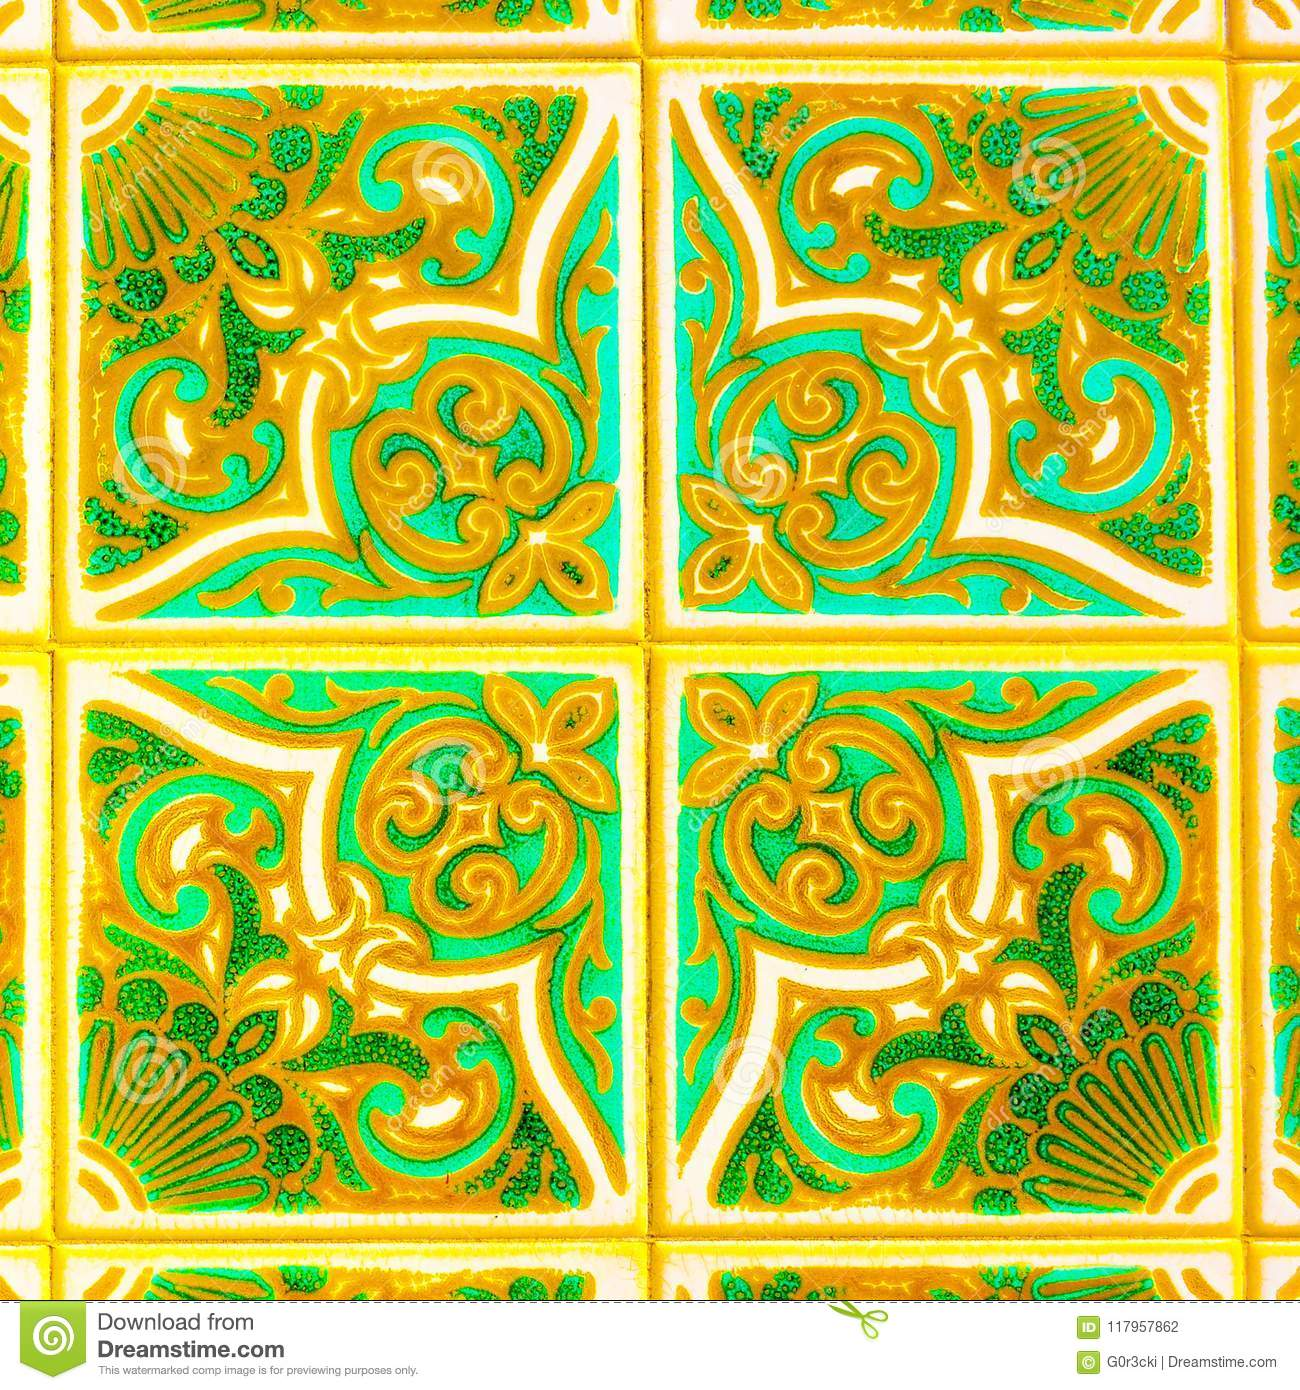 Portuguese Retro Glazed Tiles with Geometrical Pattern, Handmade Azulejos, Portugal Street Art, Abstract Background